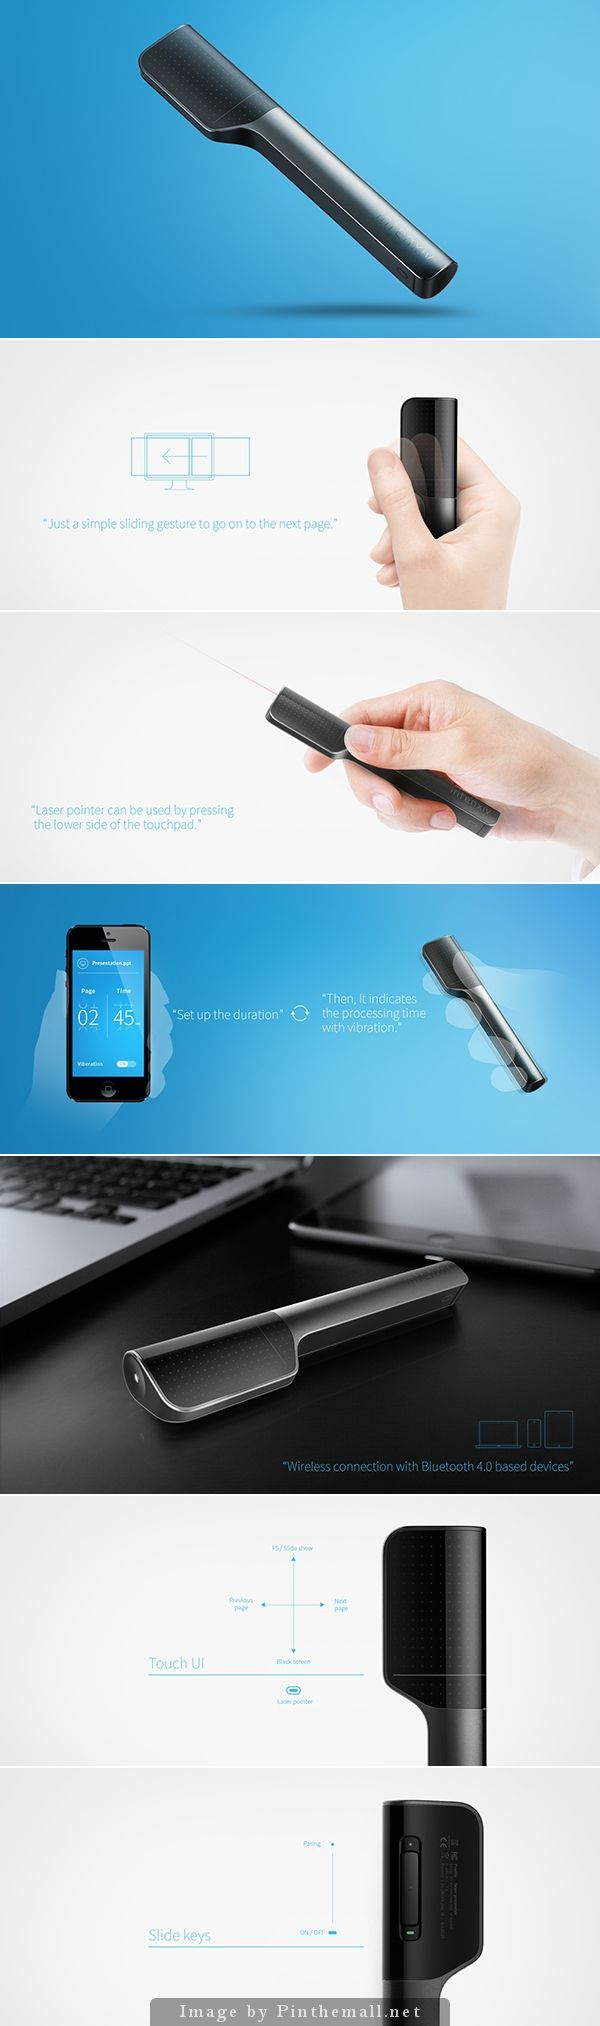 Bluetooth presenter - by intenxiv Inc. | A Bluetooth based device to manage…